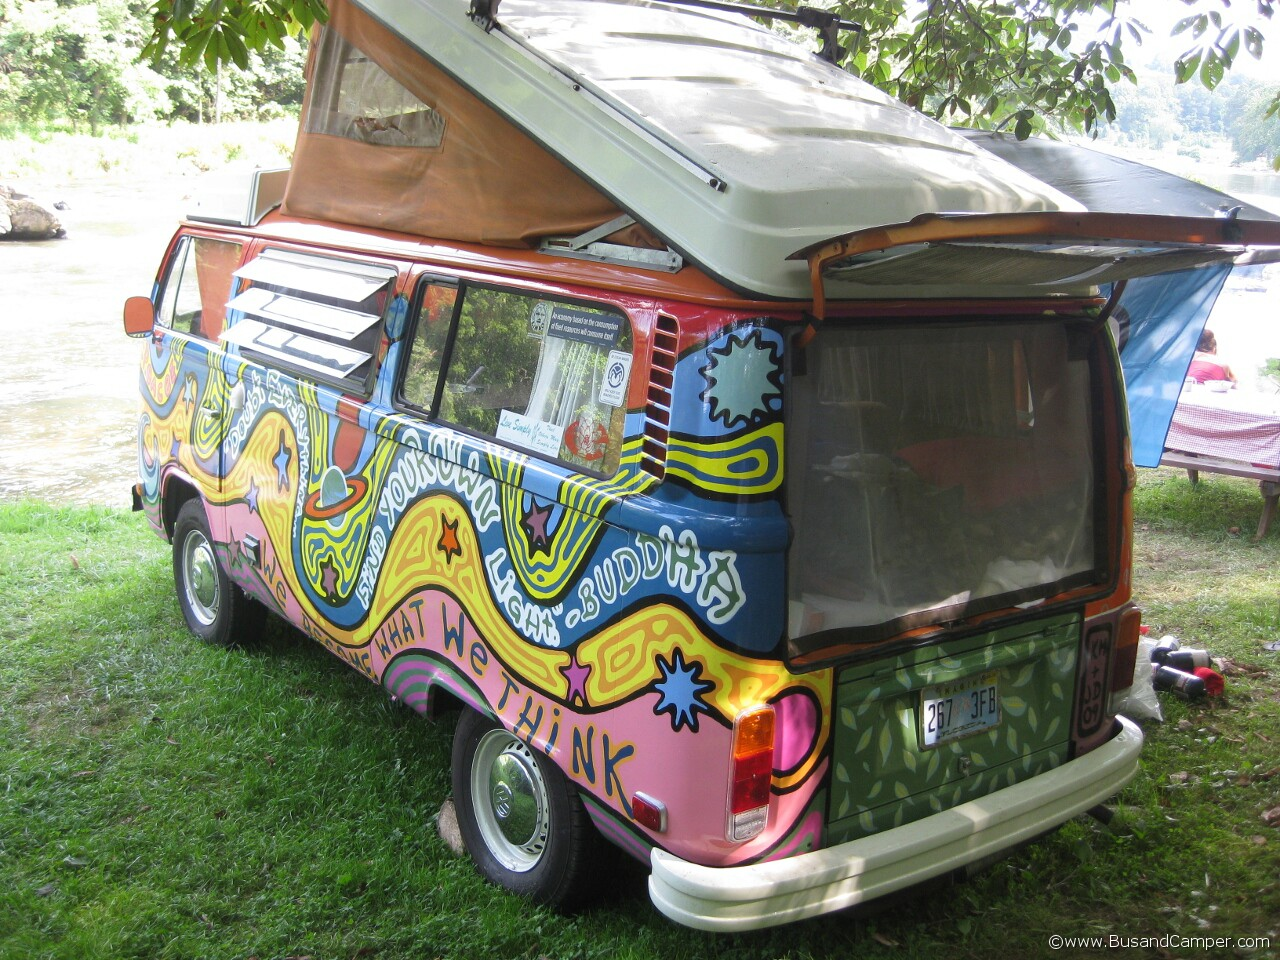 Buddha Bus Hippy paint Volkswagen 24